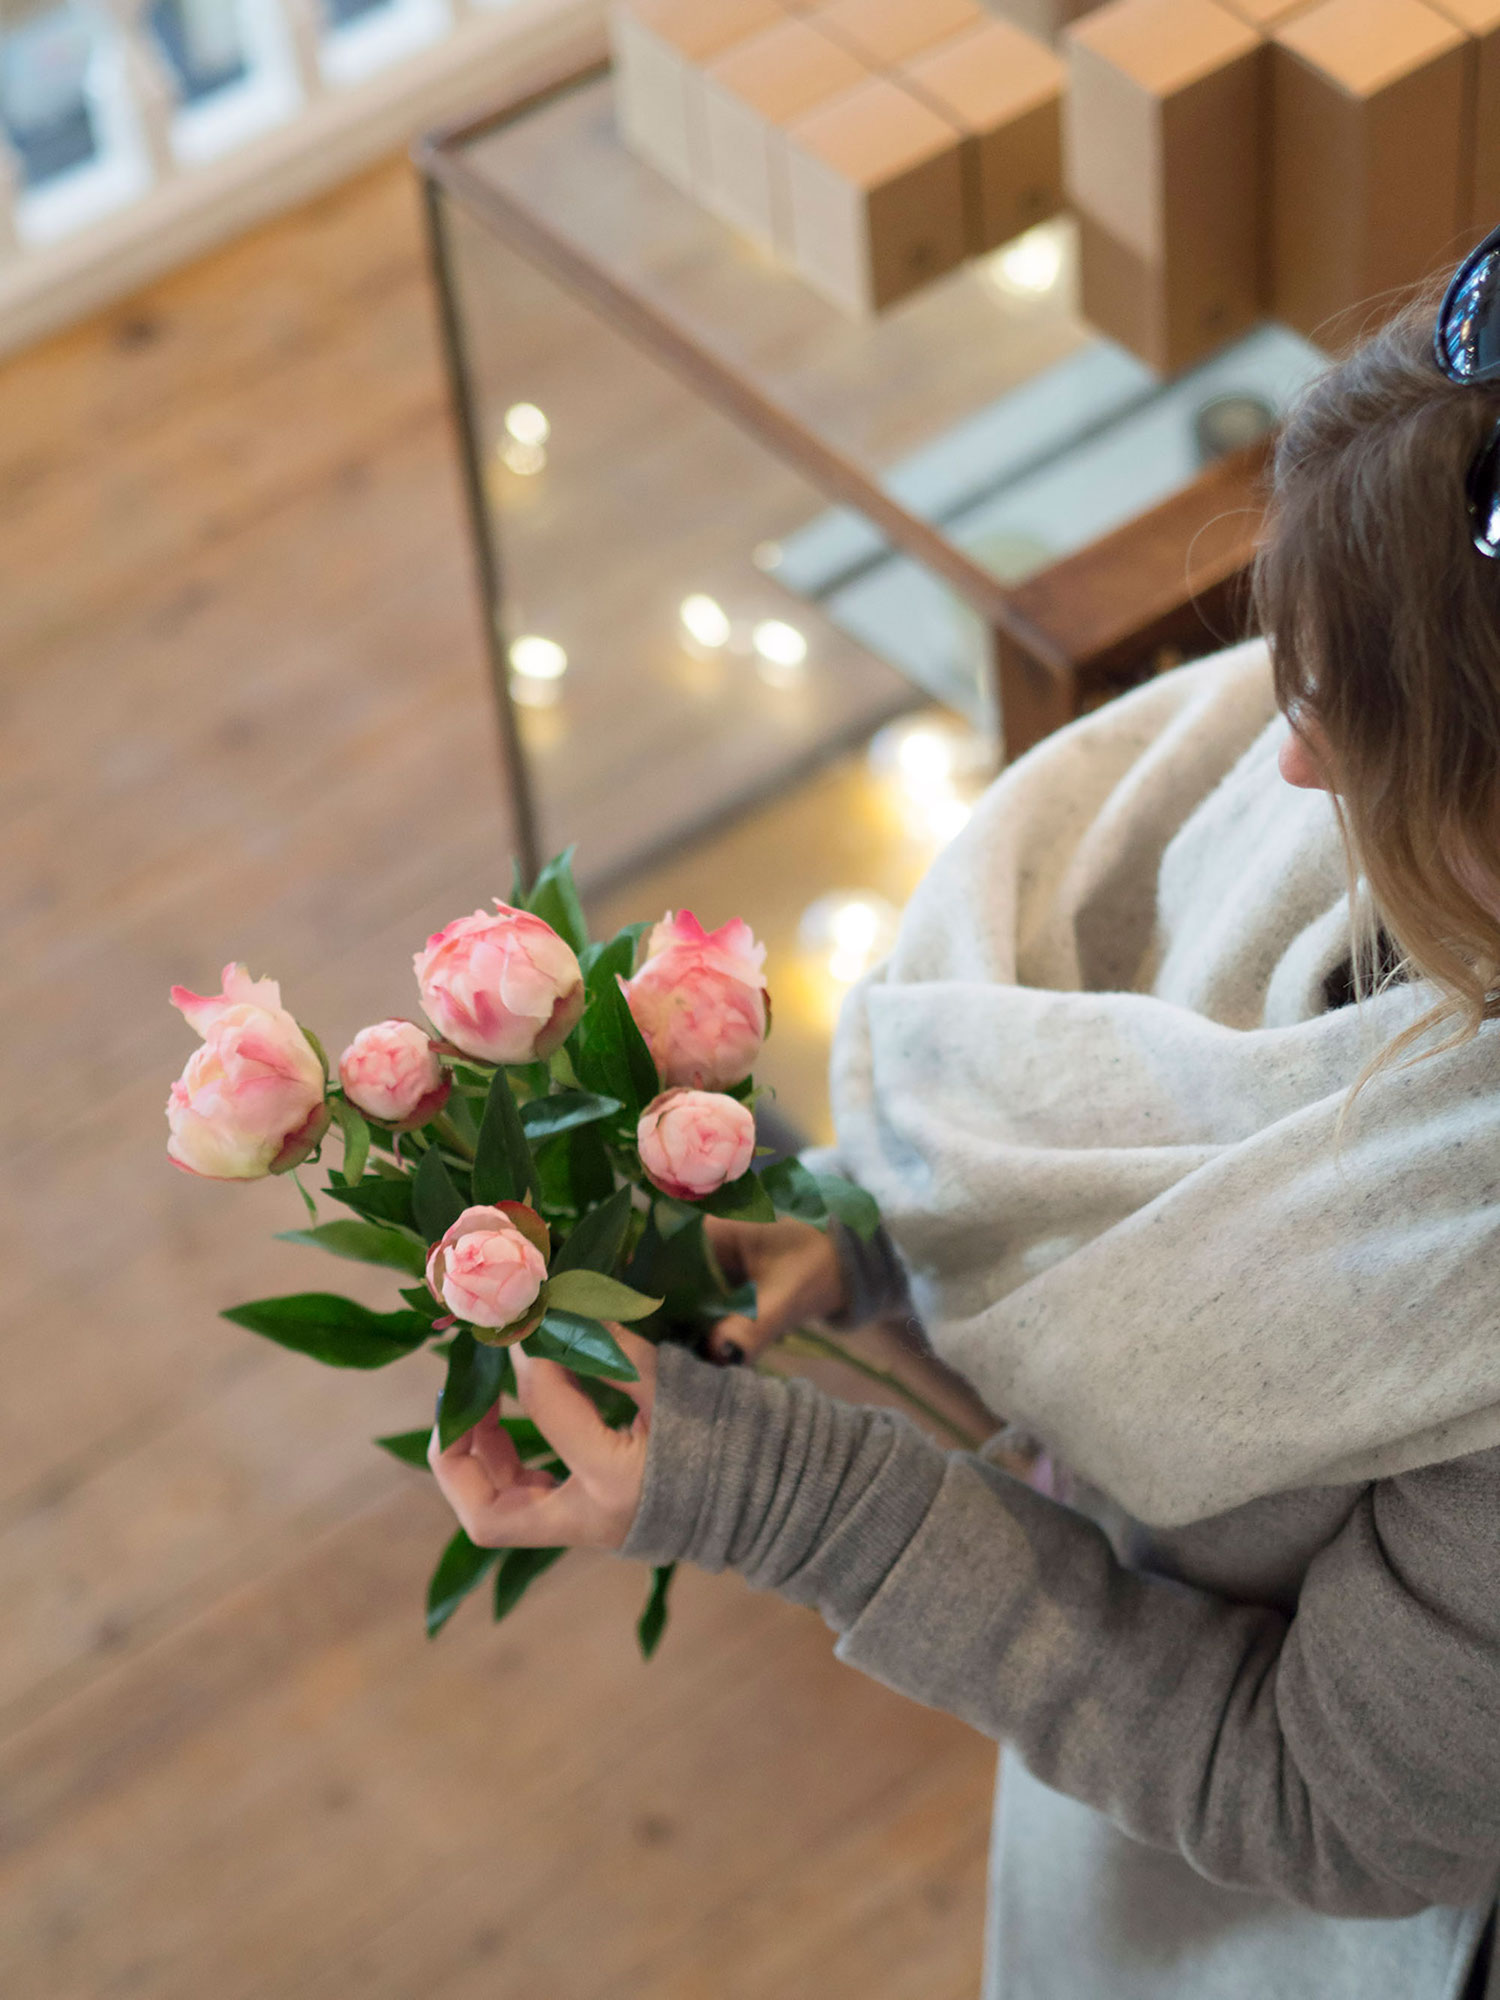 6-carrying-a-bunch-of-faux-peony-stems.jpg